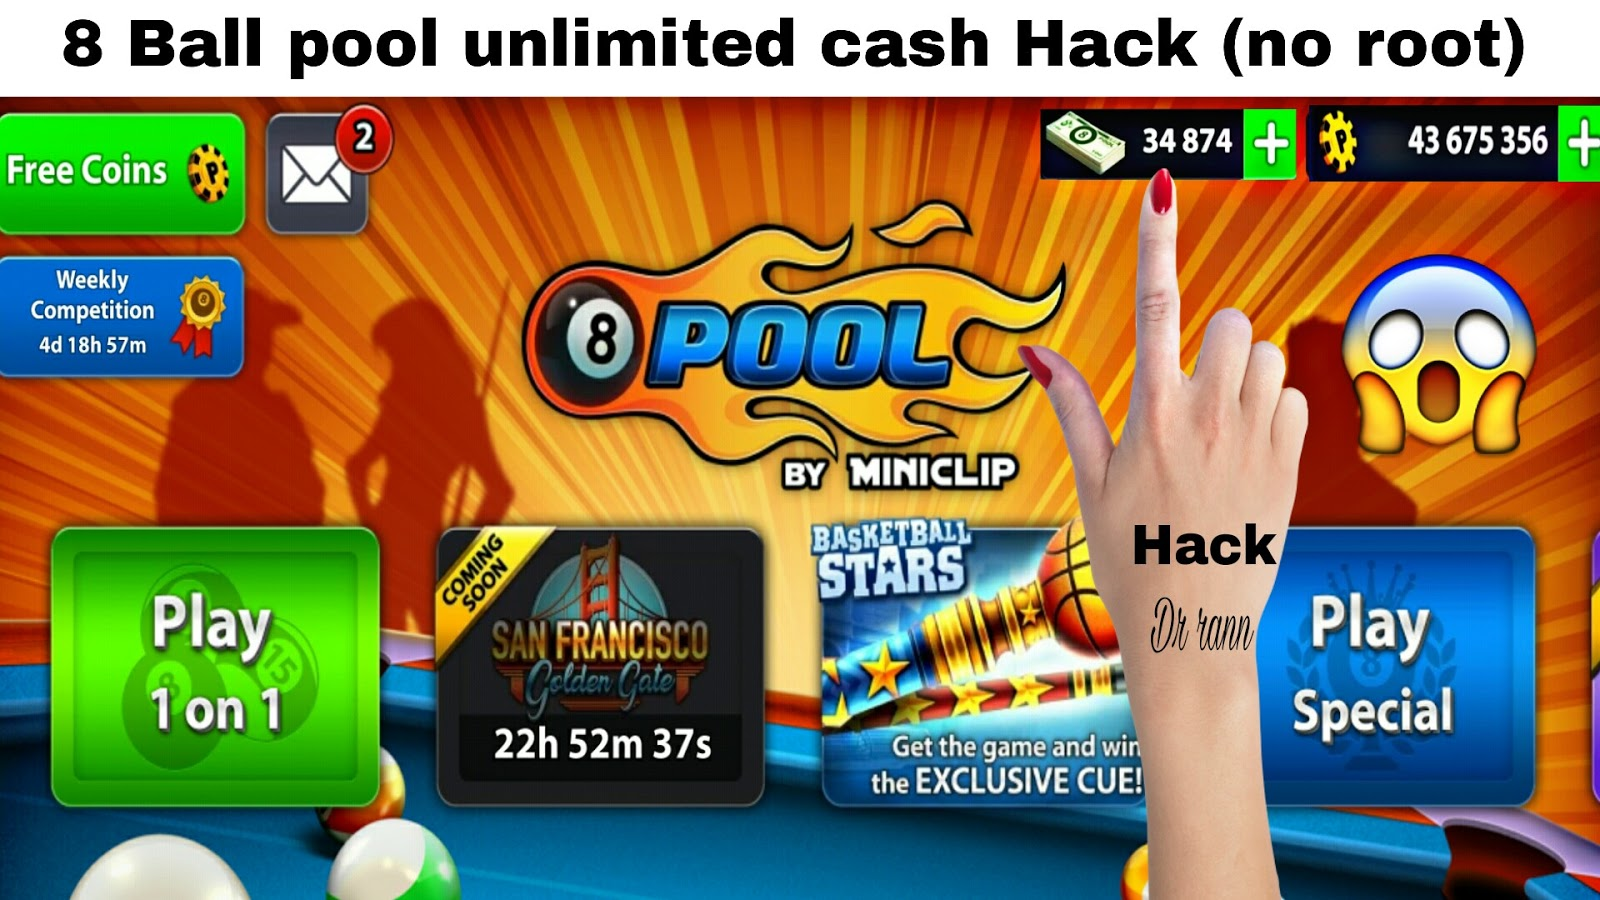 8 Ball Pool Coin Generator Online 8ballp.co 8 ball pool hack cheats - grab coins and cash